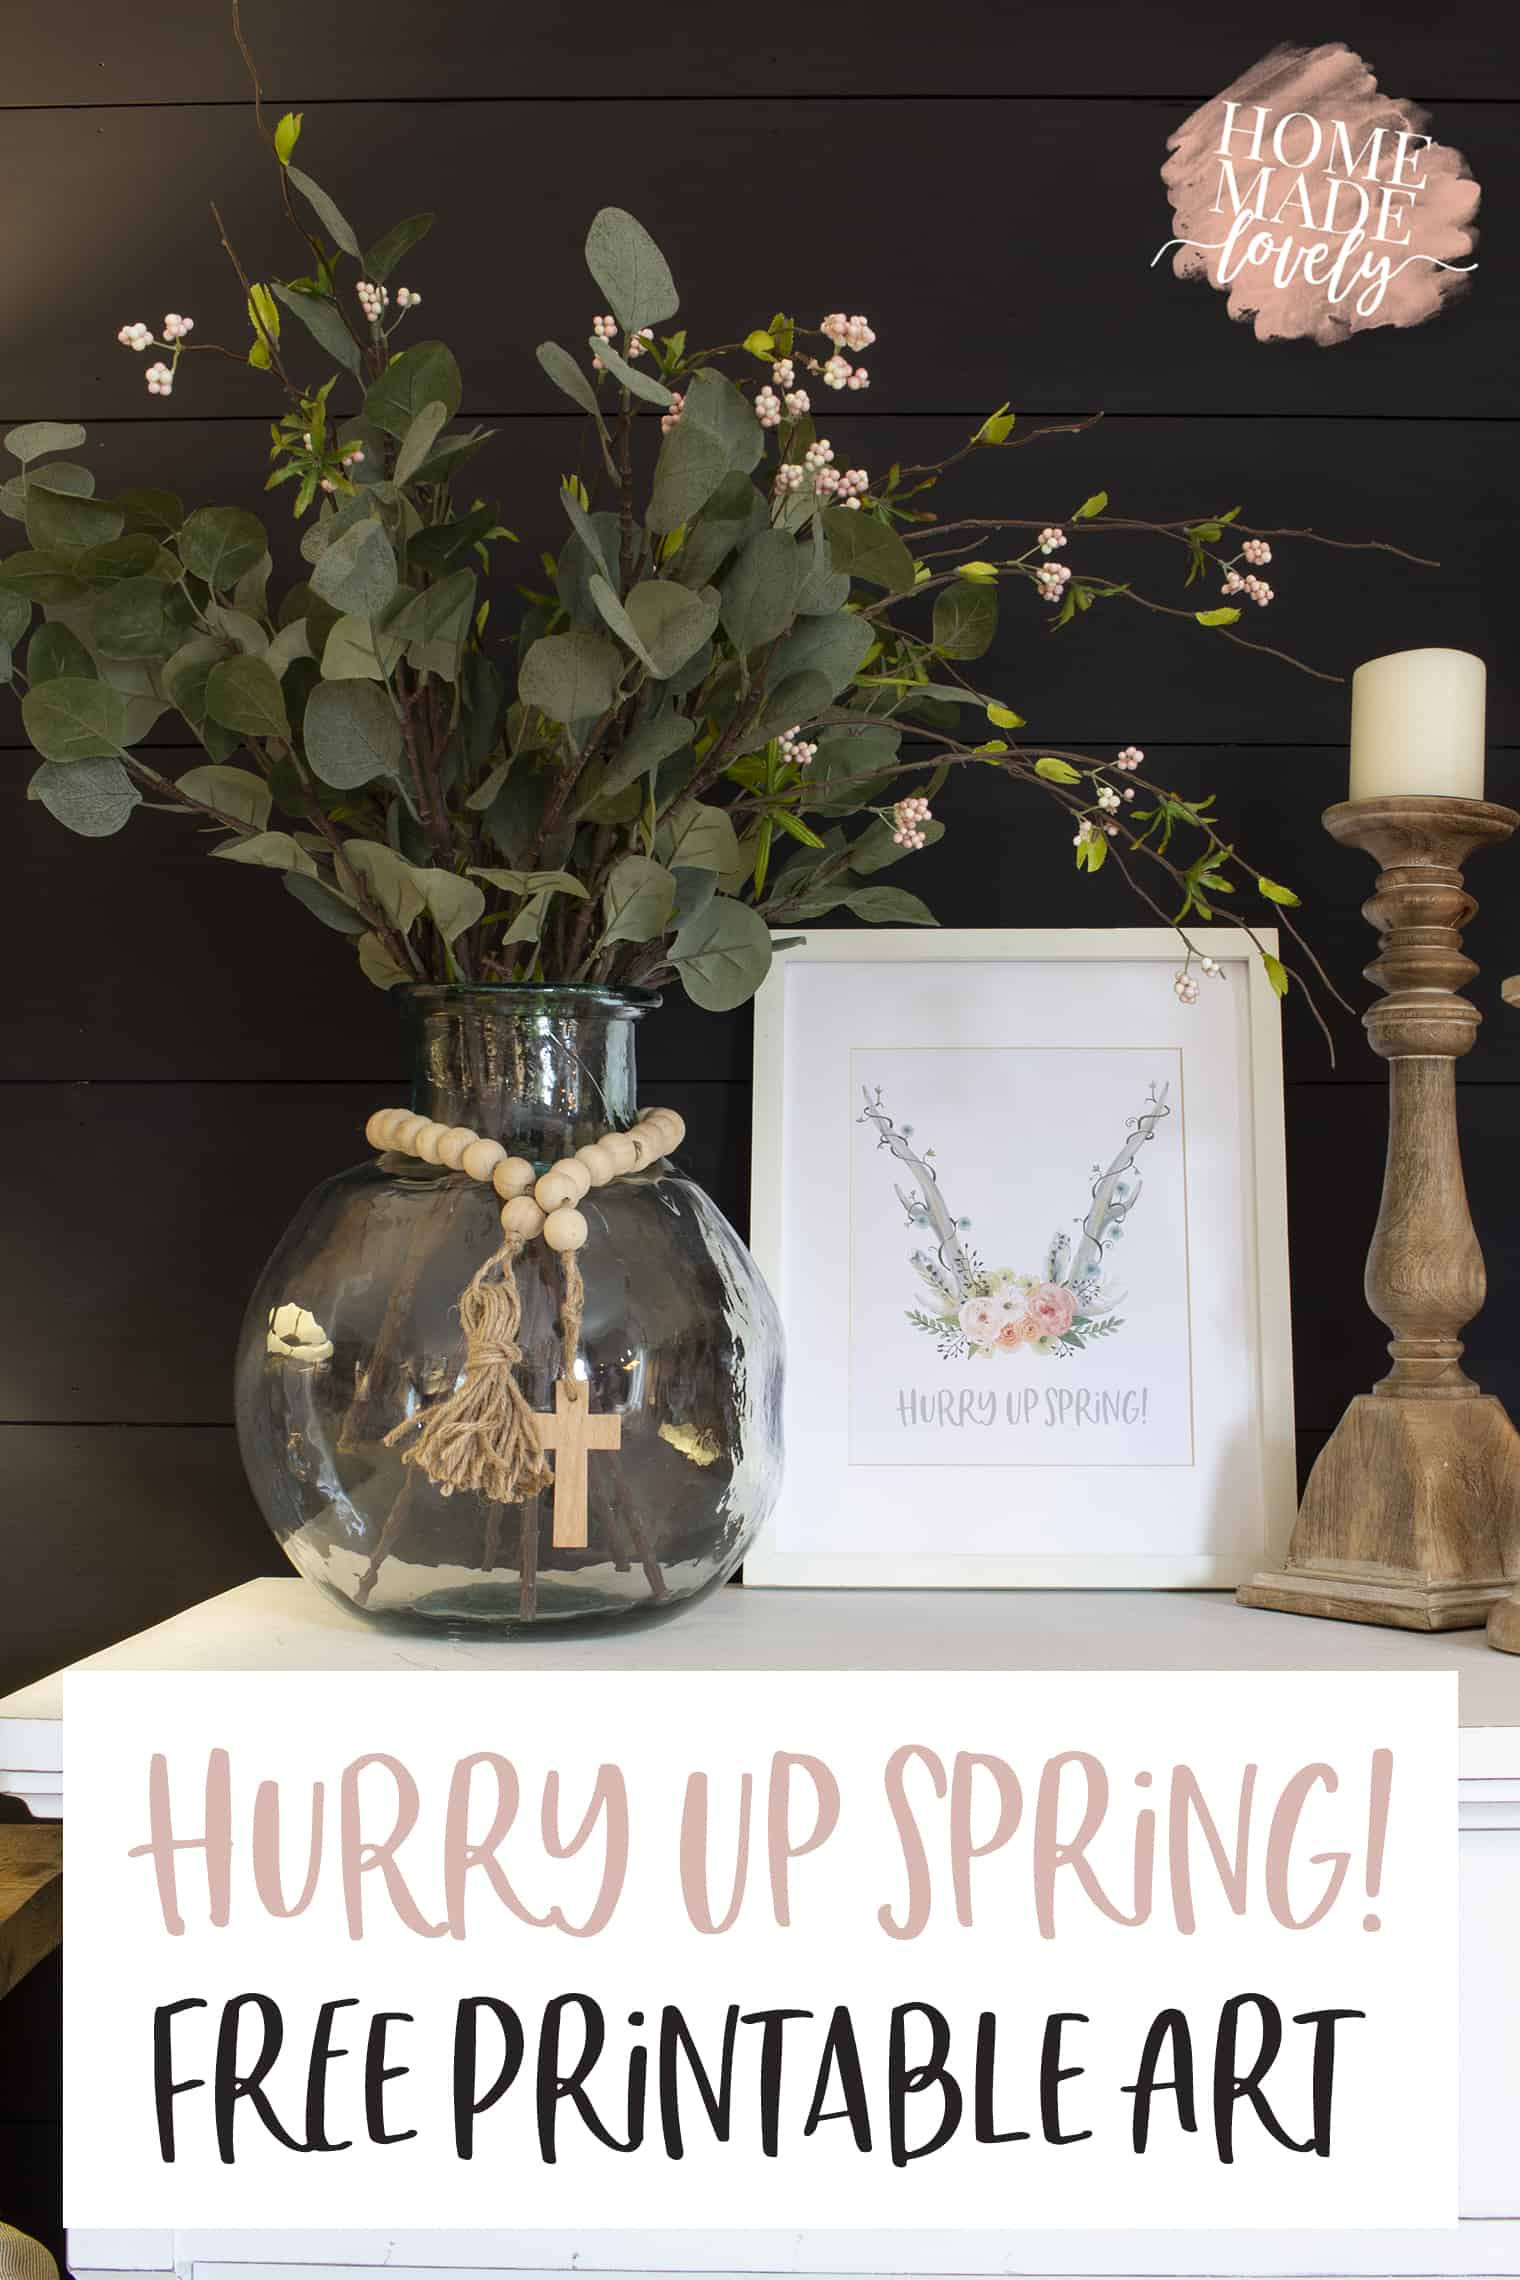 Hurry Up Spring Free Printable Art pin